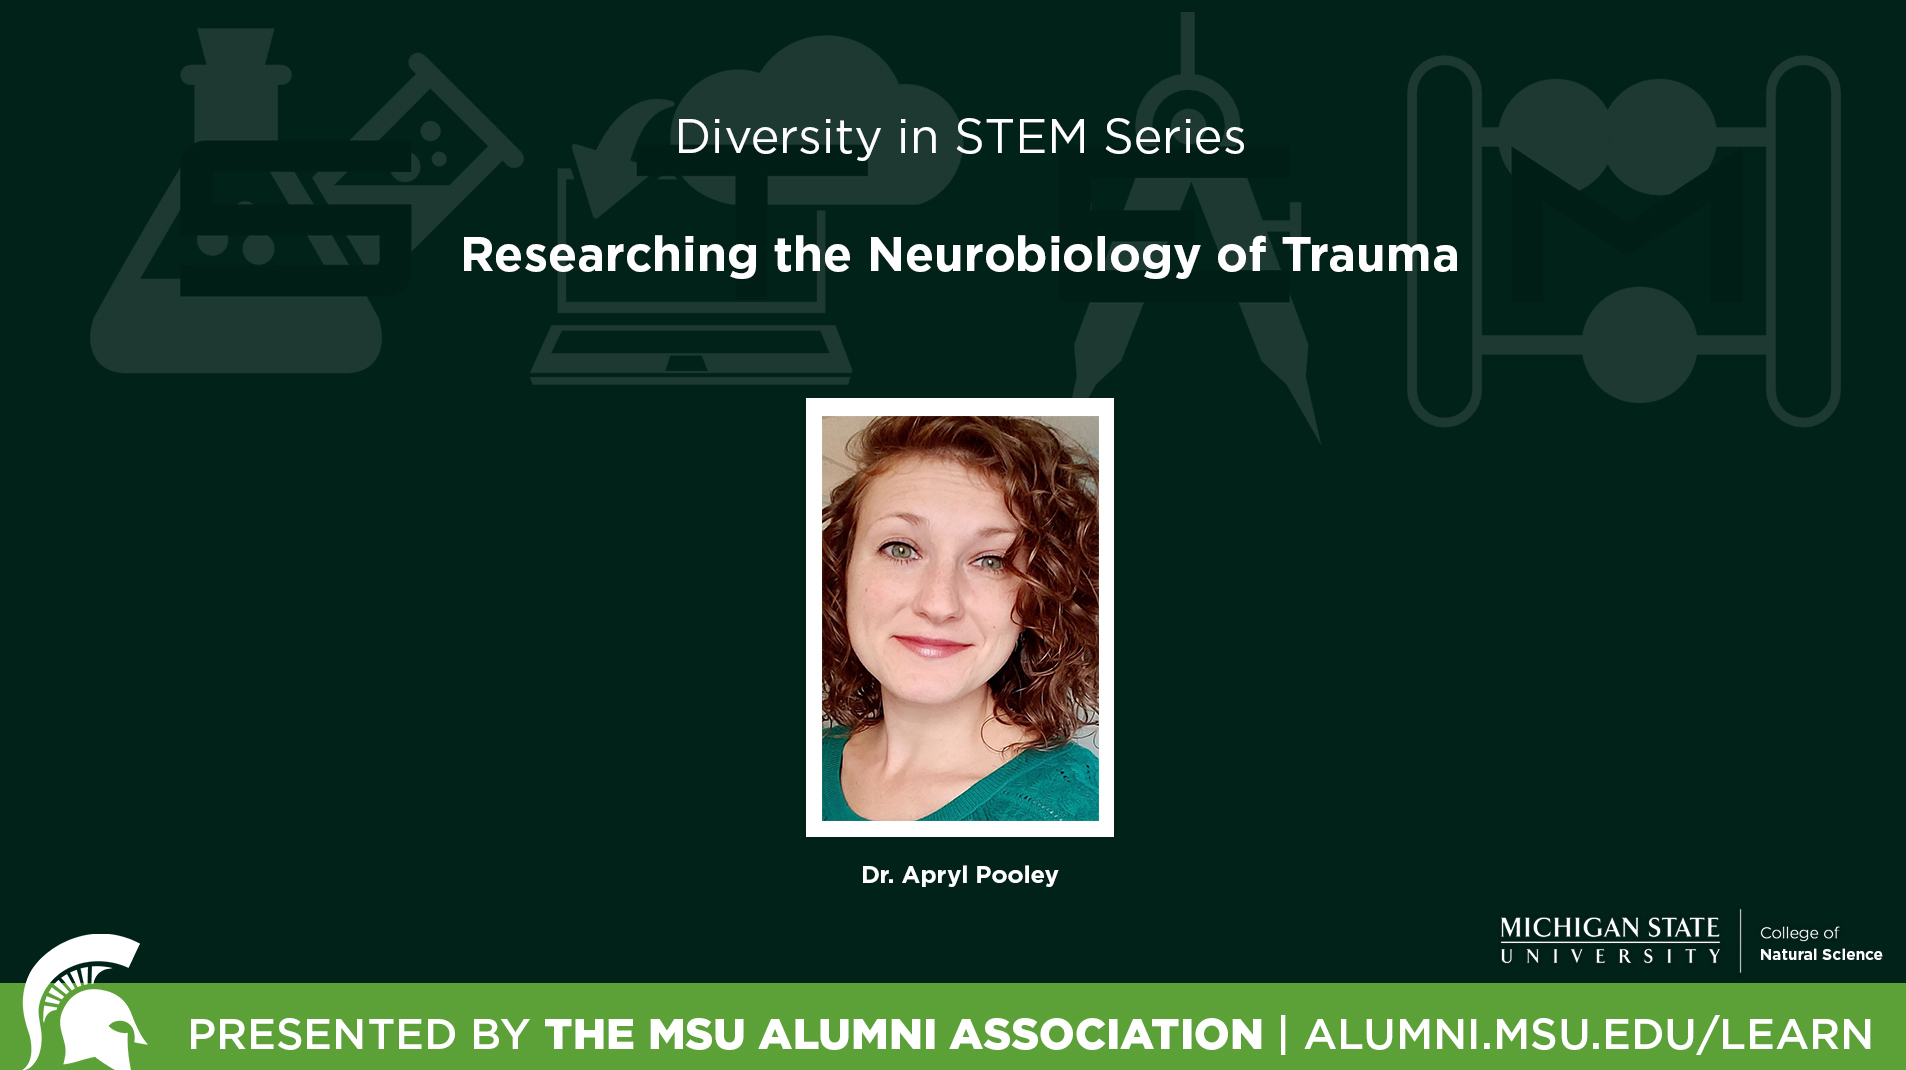 livestream cover image for Diversity In STEM Series | Researching the Neurobiology of Trauma